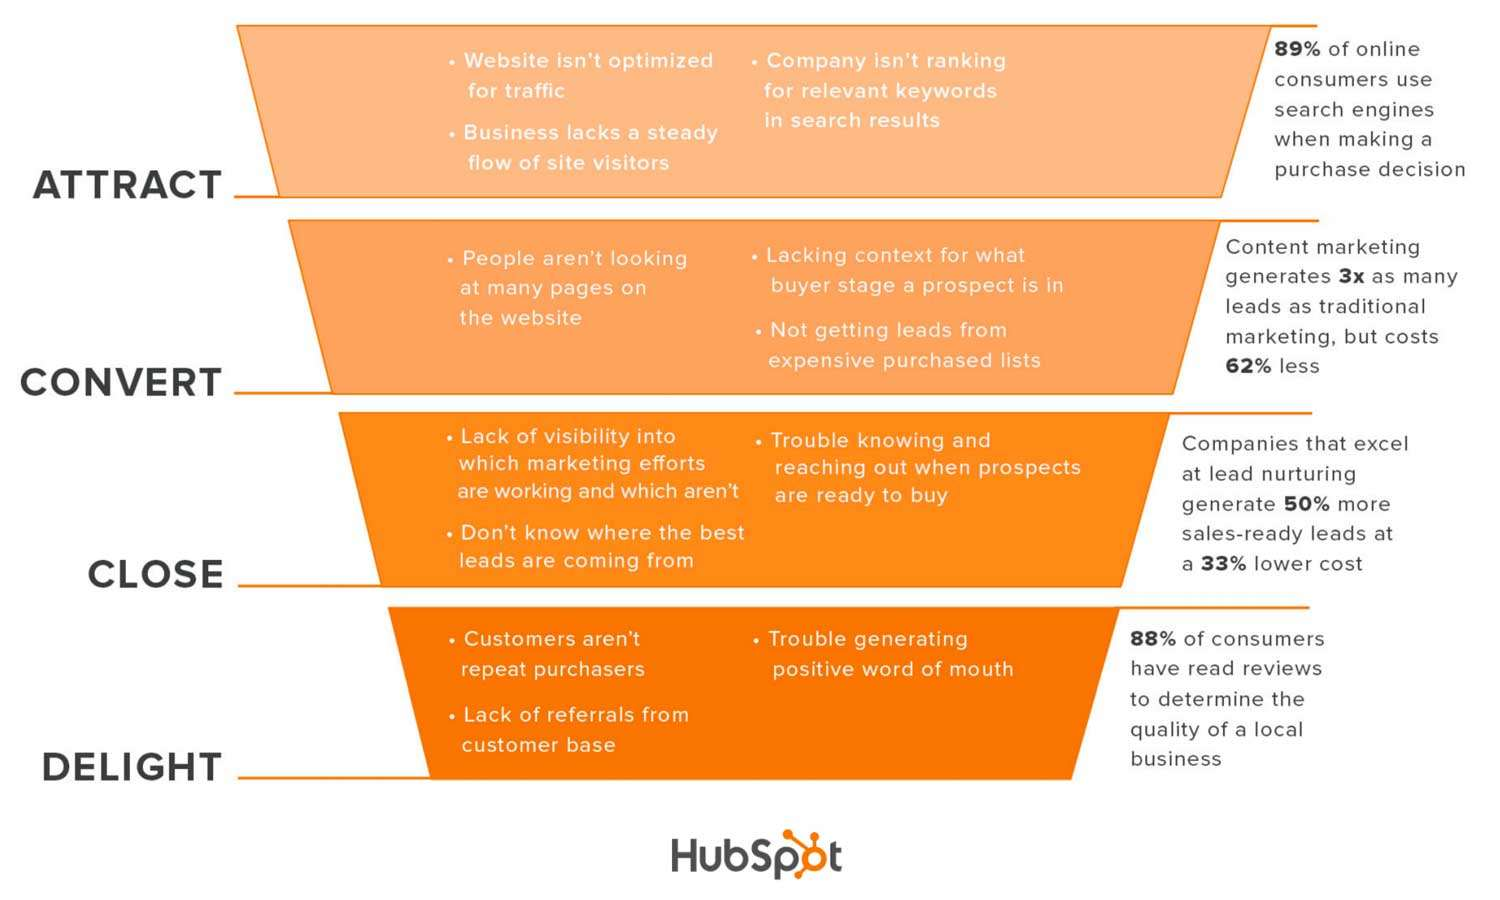 inbound marketing business challenges